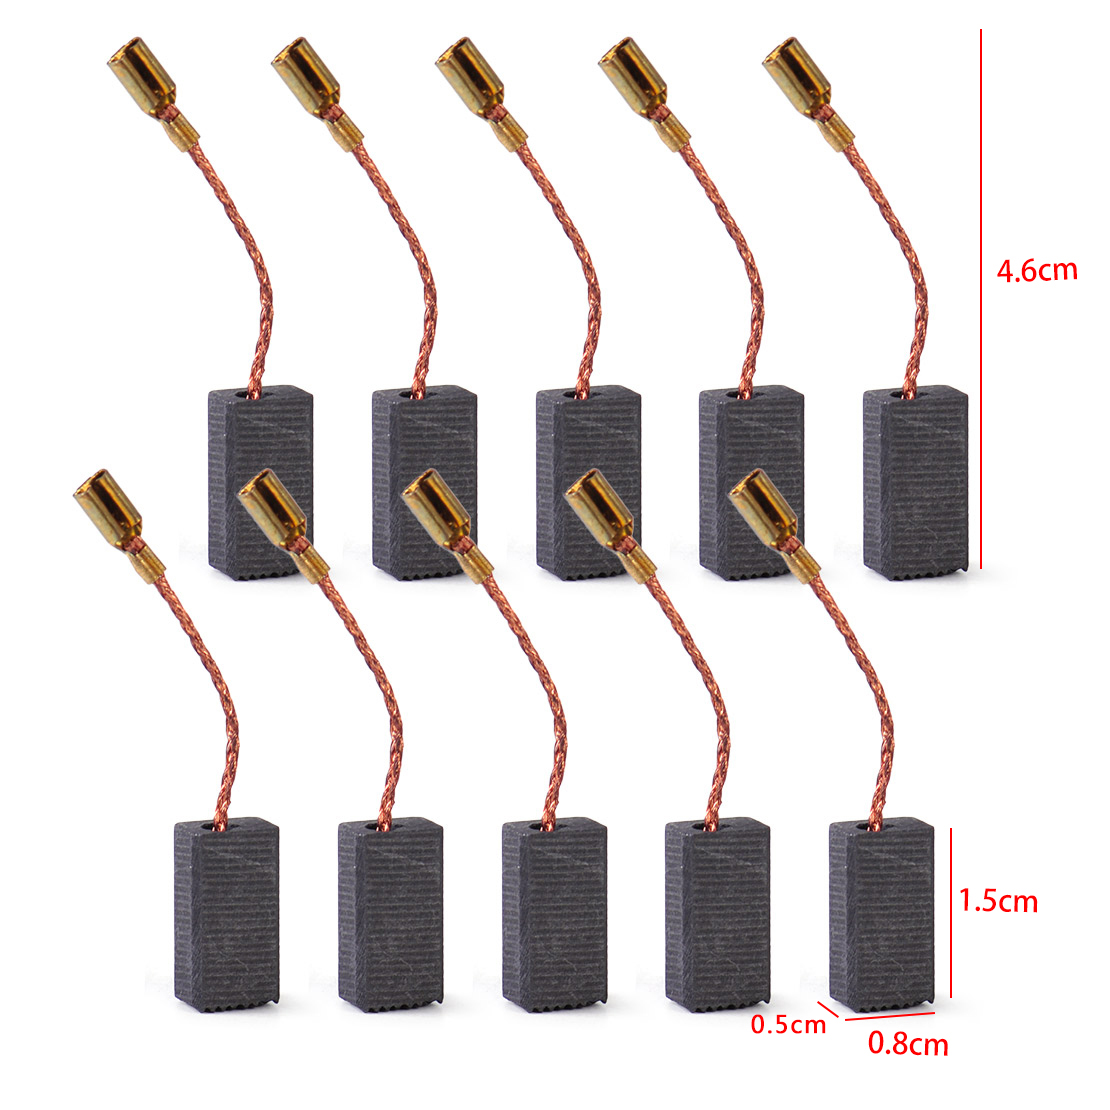 10pcs carbon brushes for bosch gws 850 c gws 7 115 gws 8. Black Bedroom Furniture Sets. Home Design Ideas